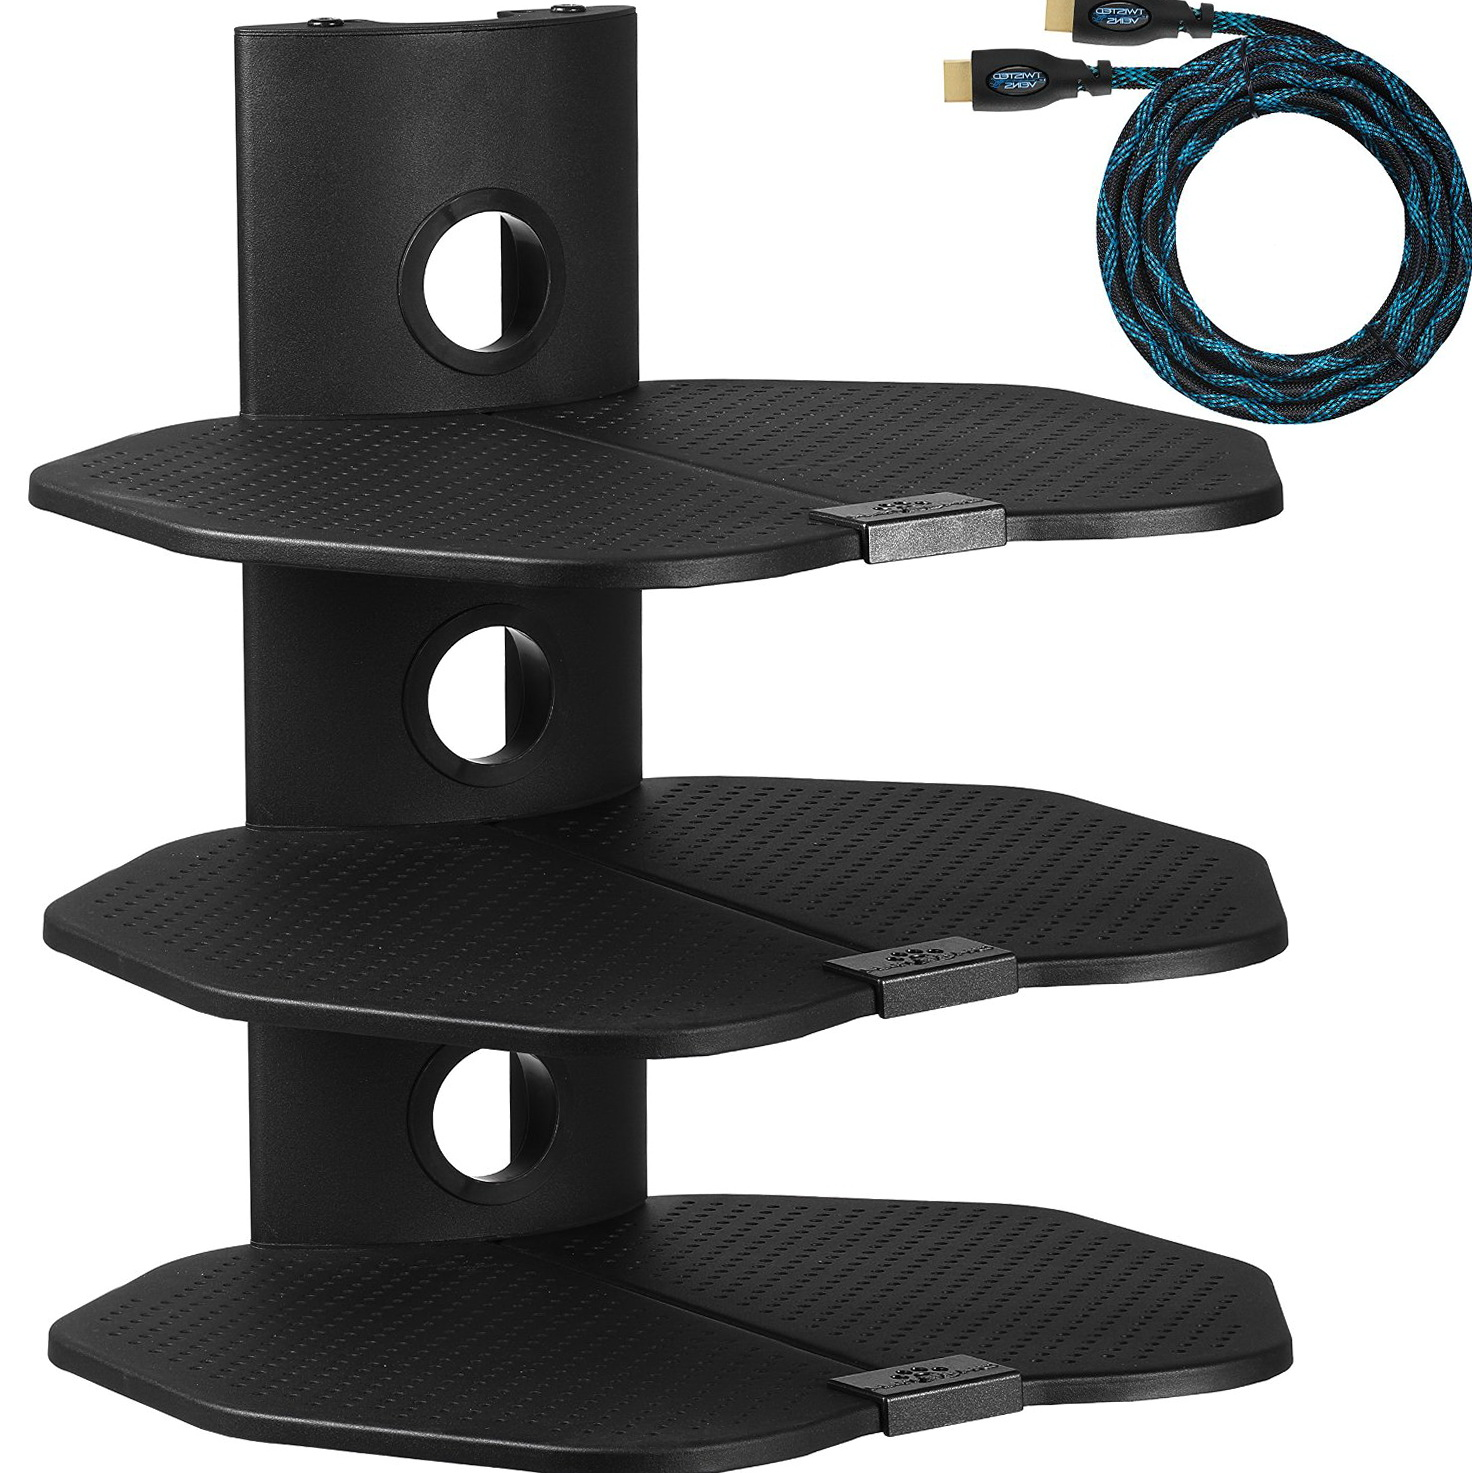 Corner Wall Mount Shelf For Cable Box